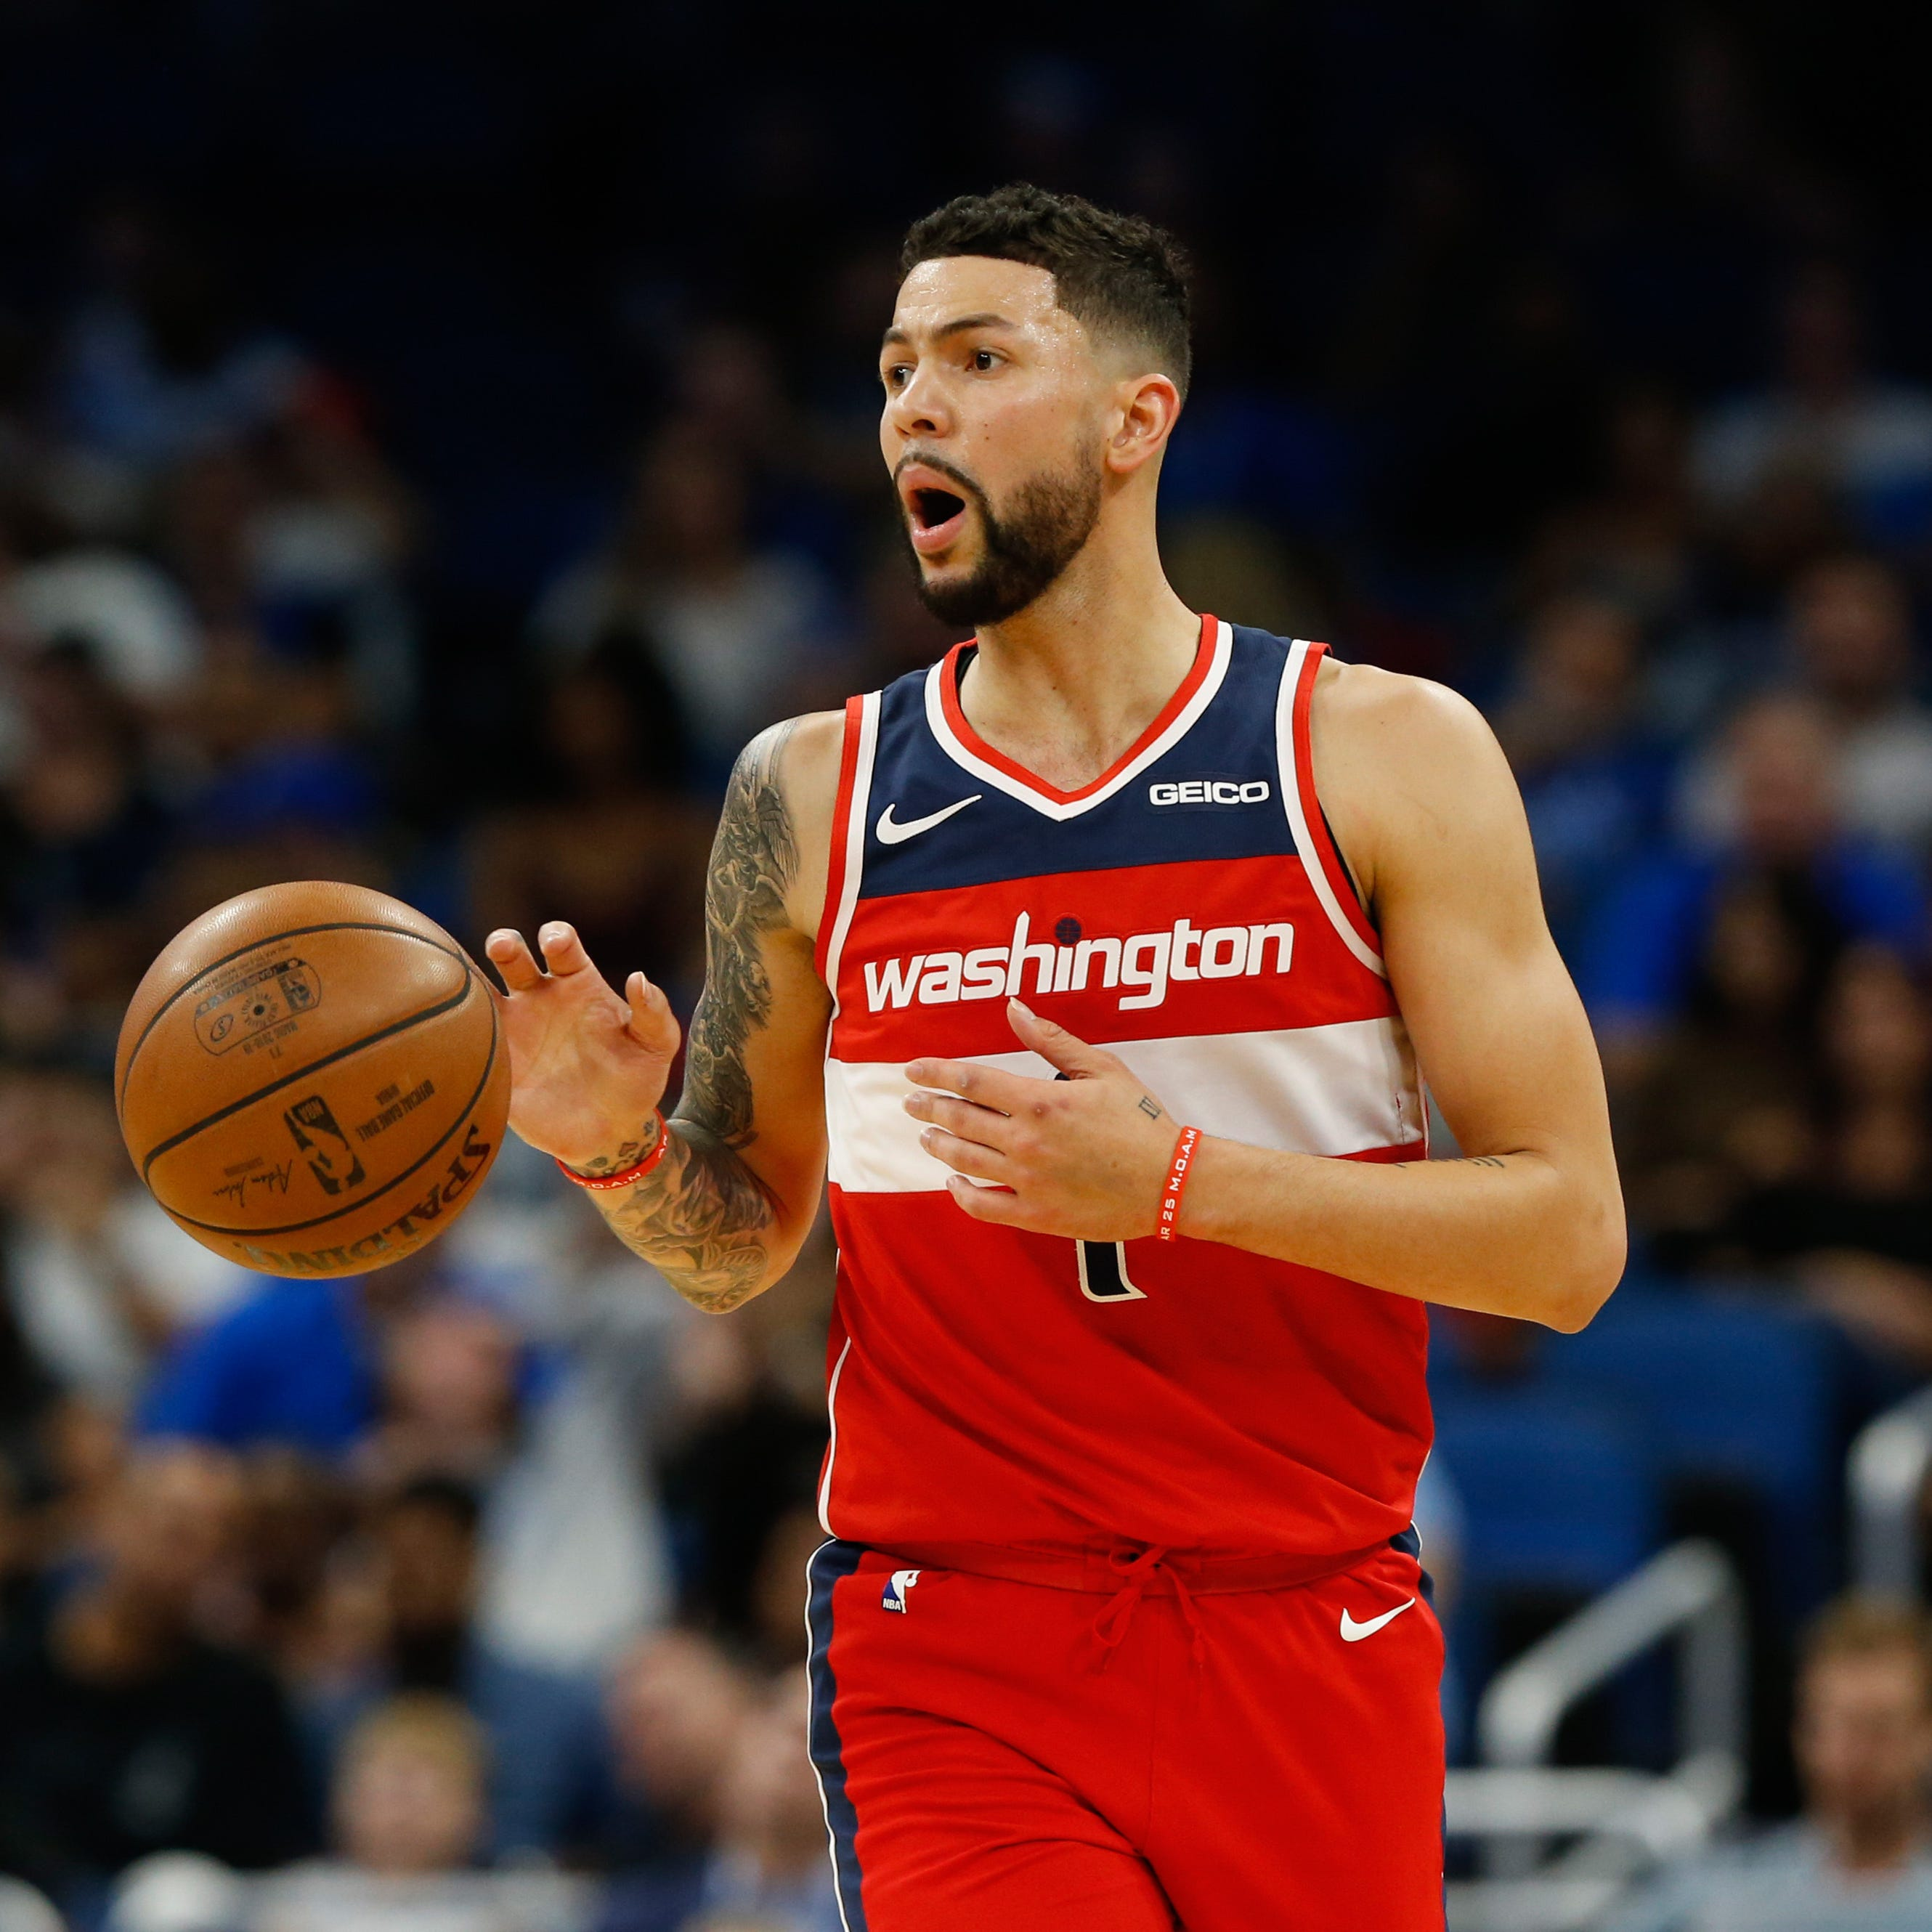 Suns make it official, waive Austin Rivers after trade